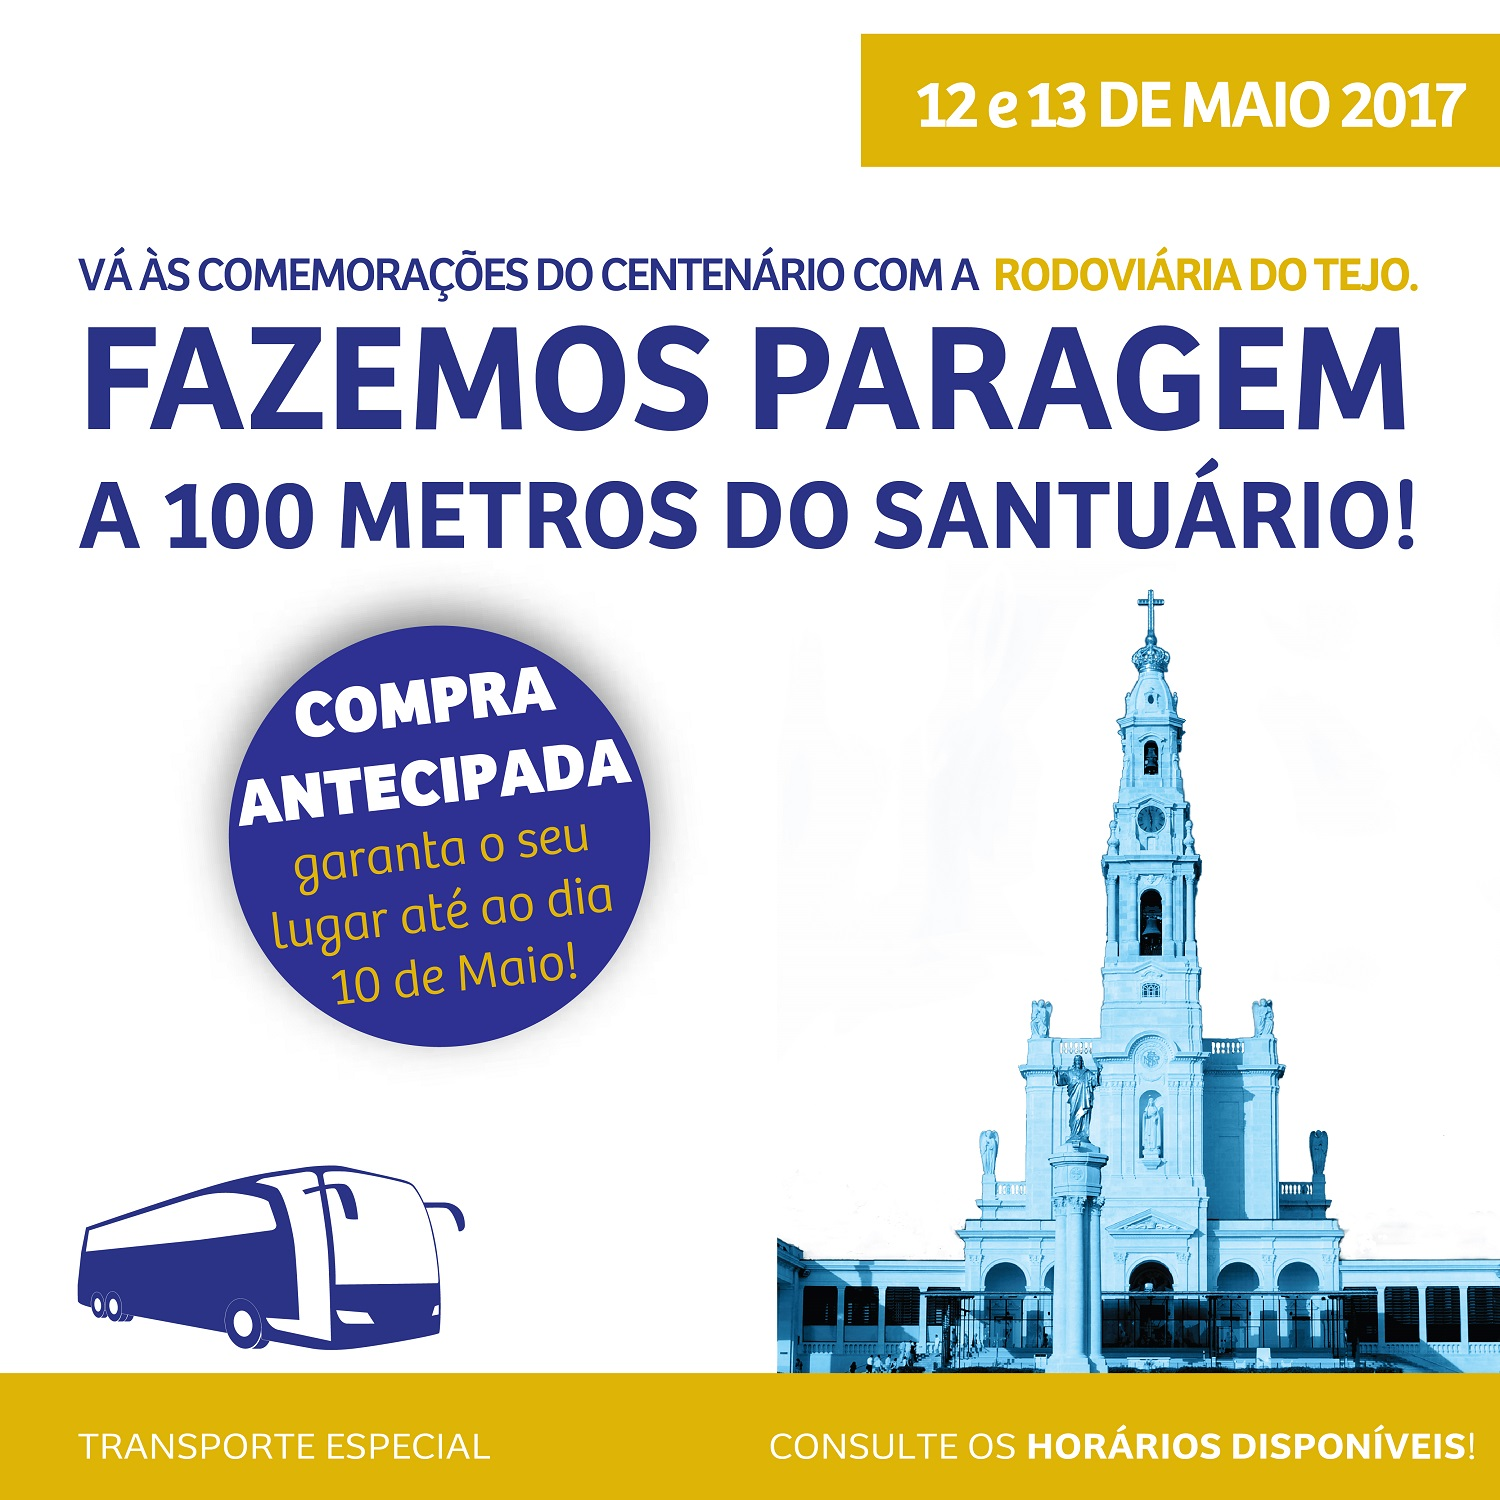 noticia_website_fatima2017_rt-02